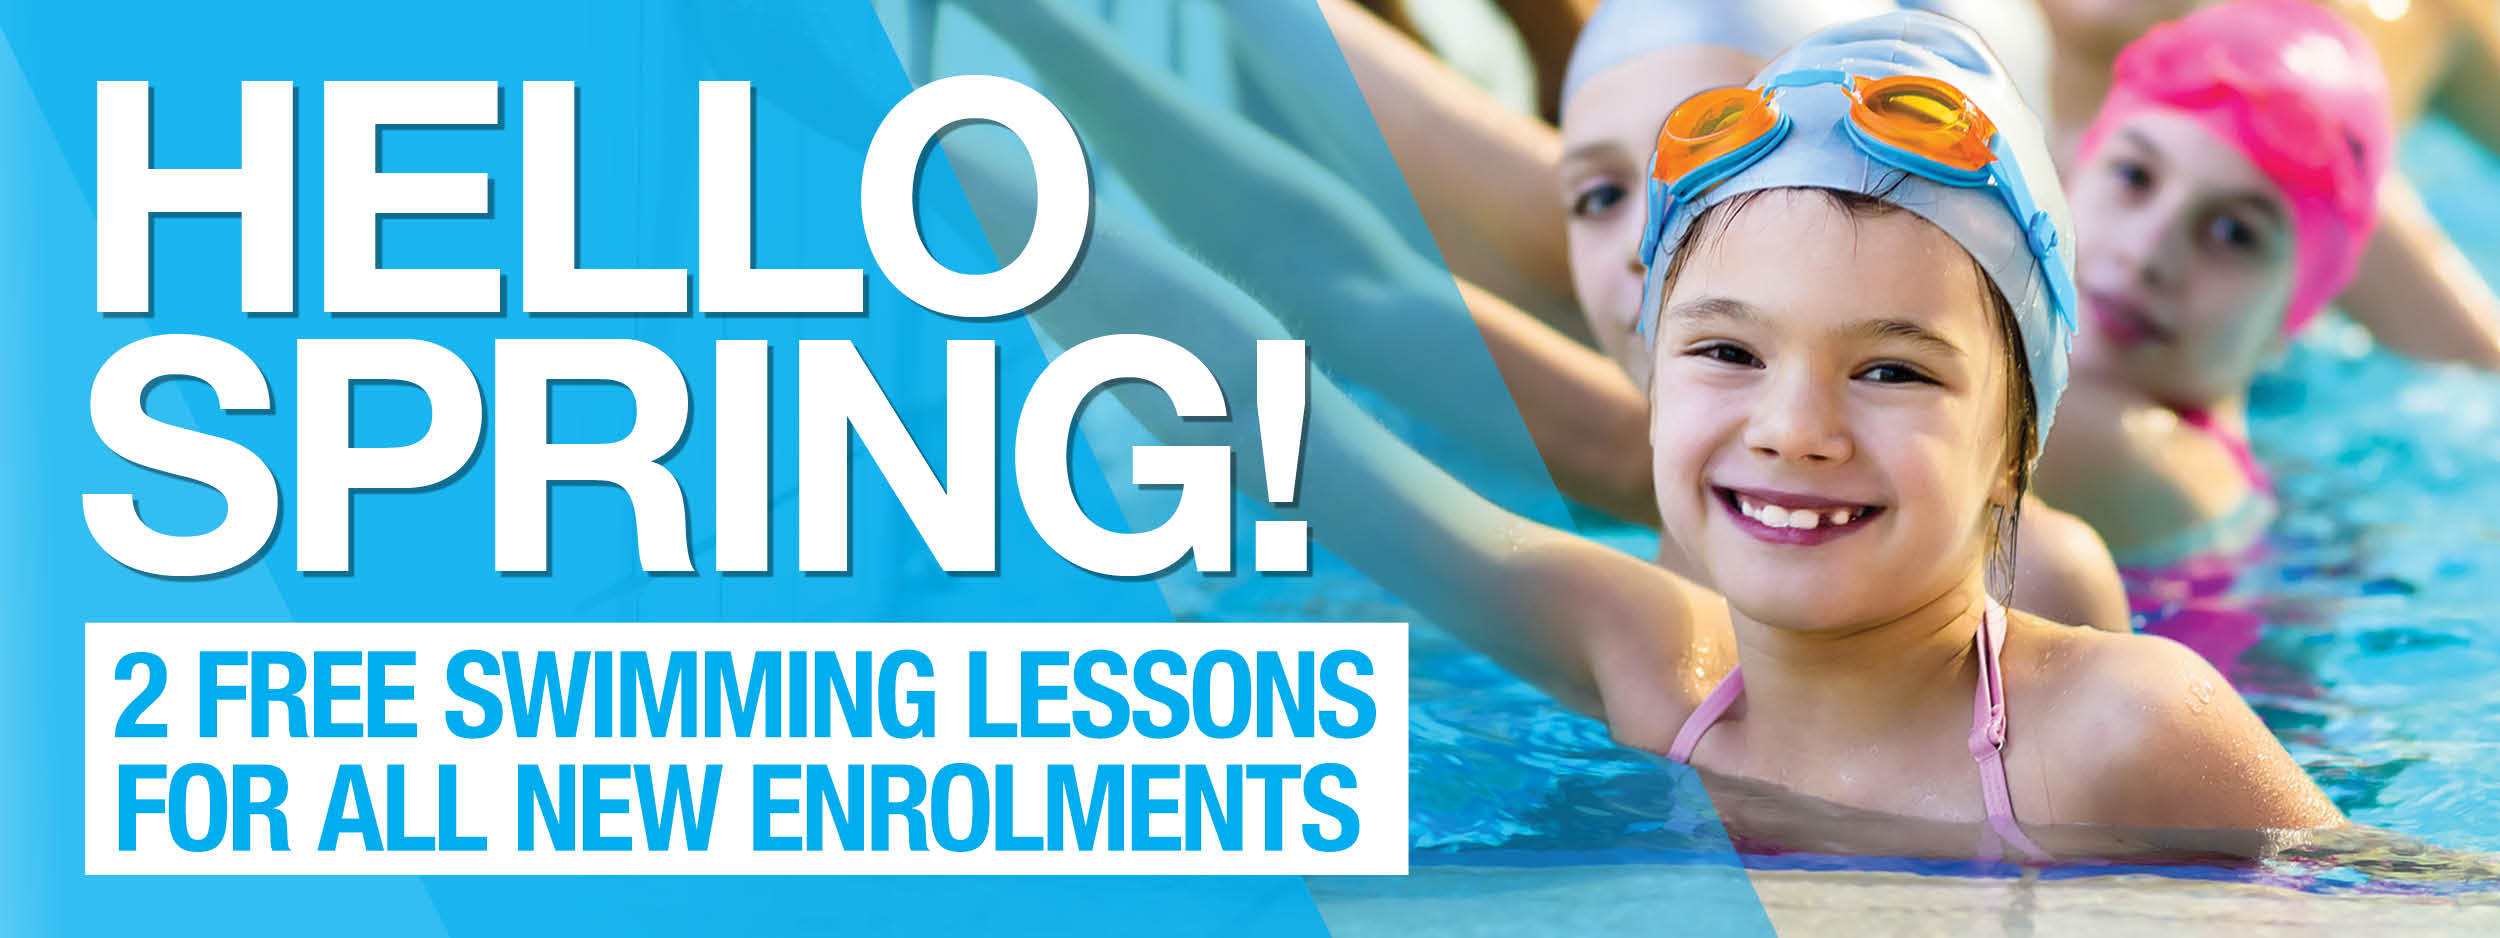 Spring-Campaign_Swimming-Lessons-Banner.jpg#asset:8342